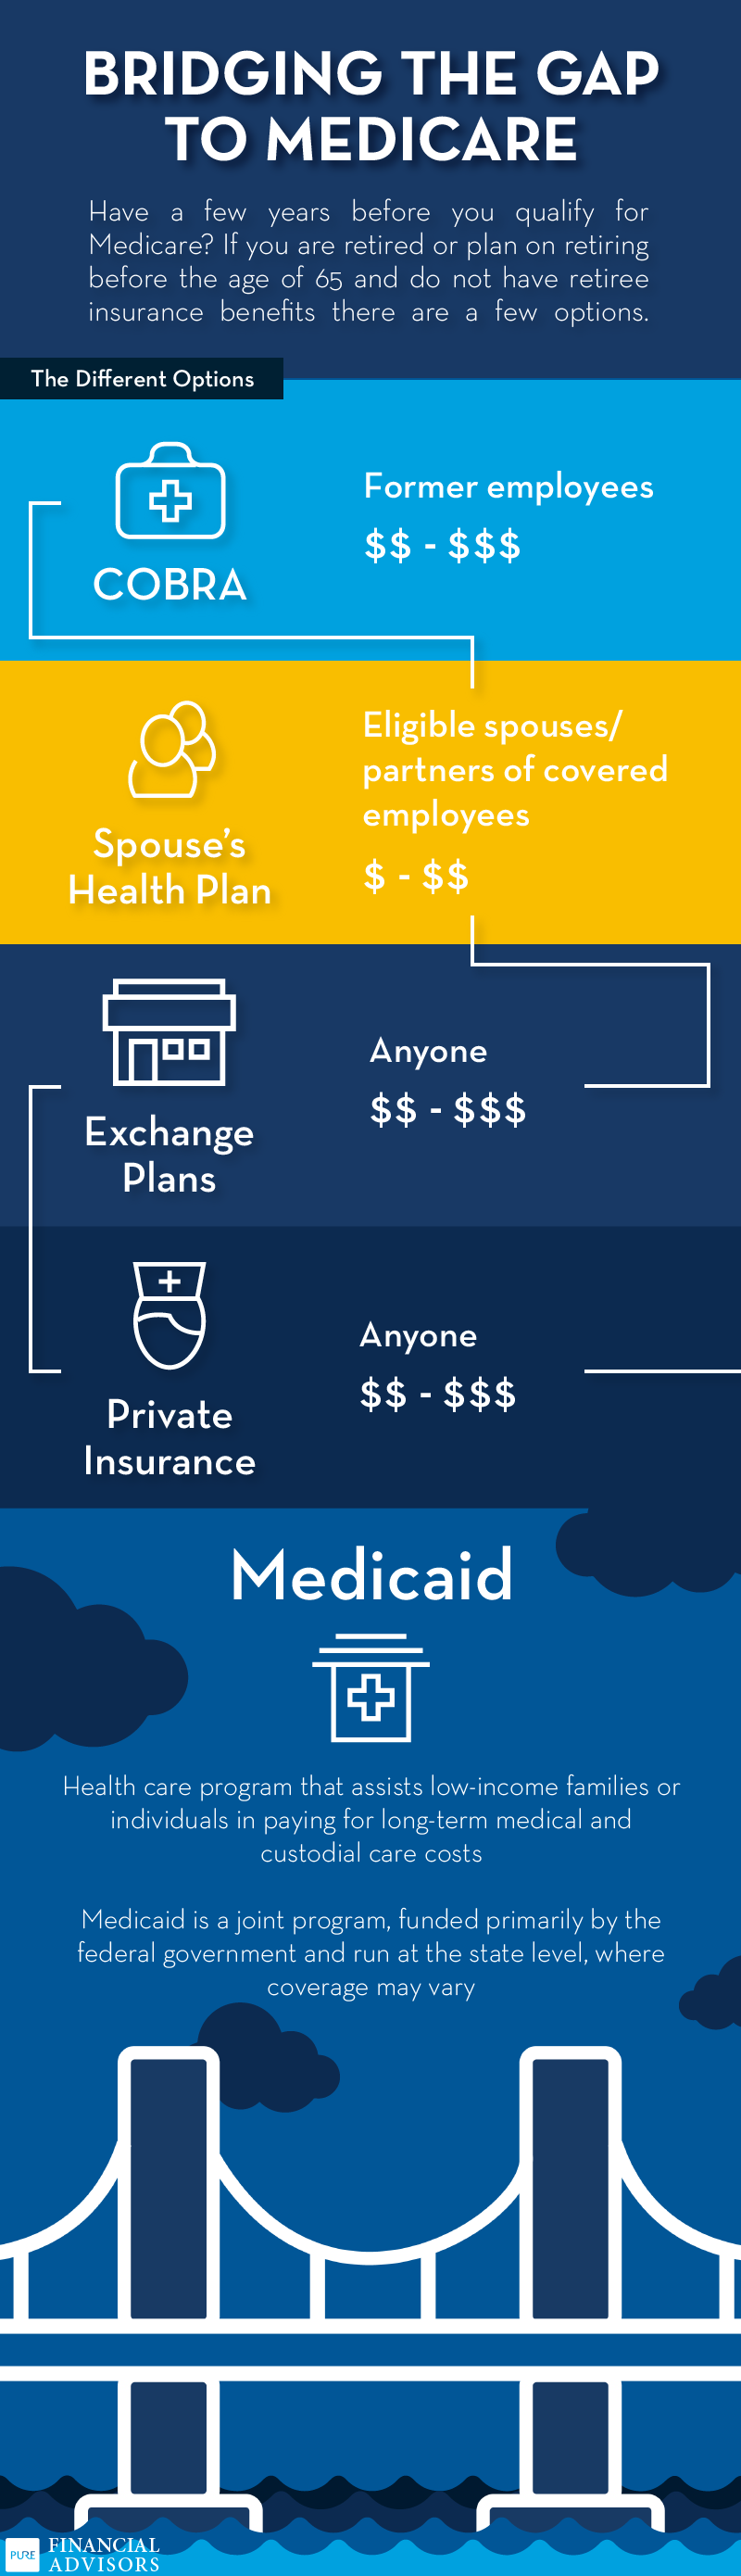 How To Bridge The Gap To Medicare Medicare Health Plan